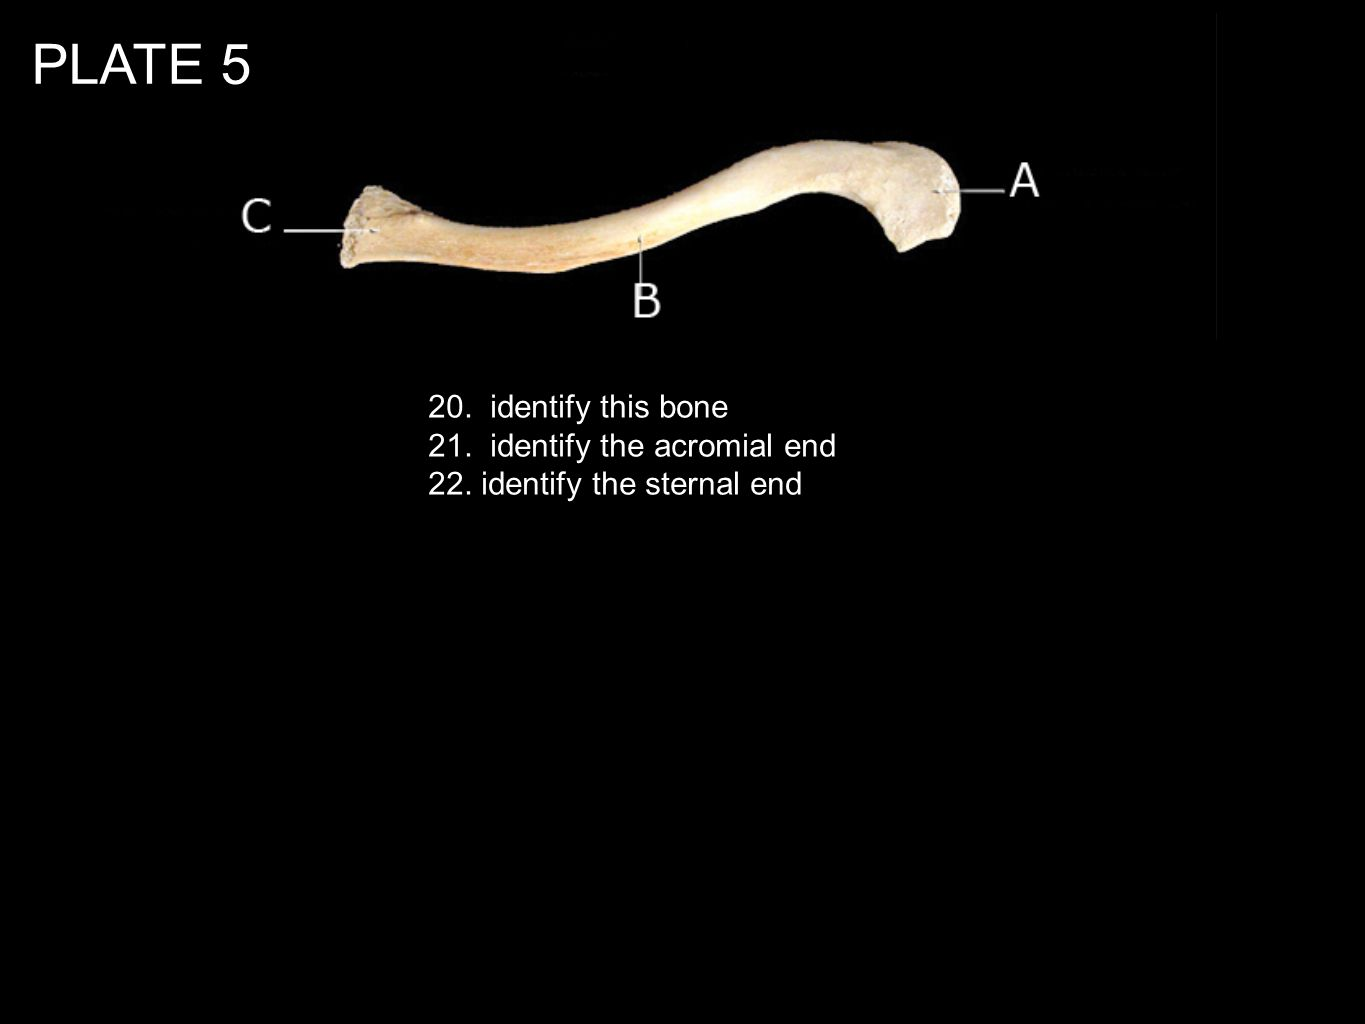 PLATE identify this bone 21. identify the acromial end